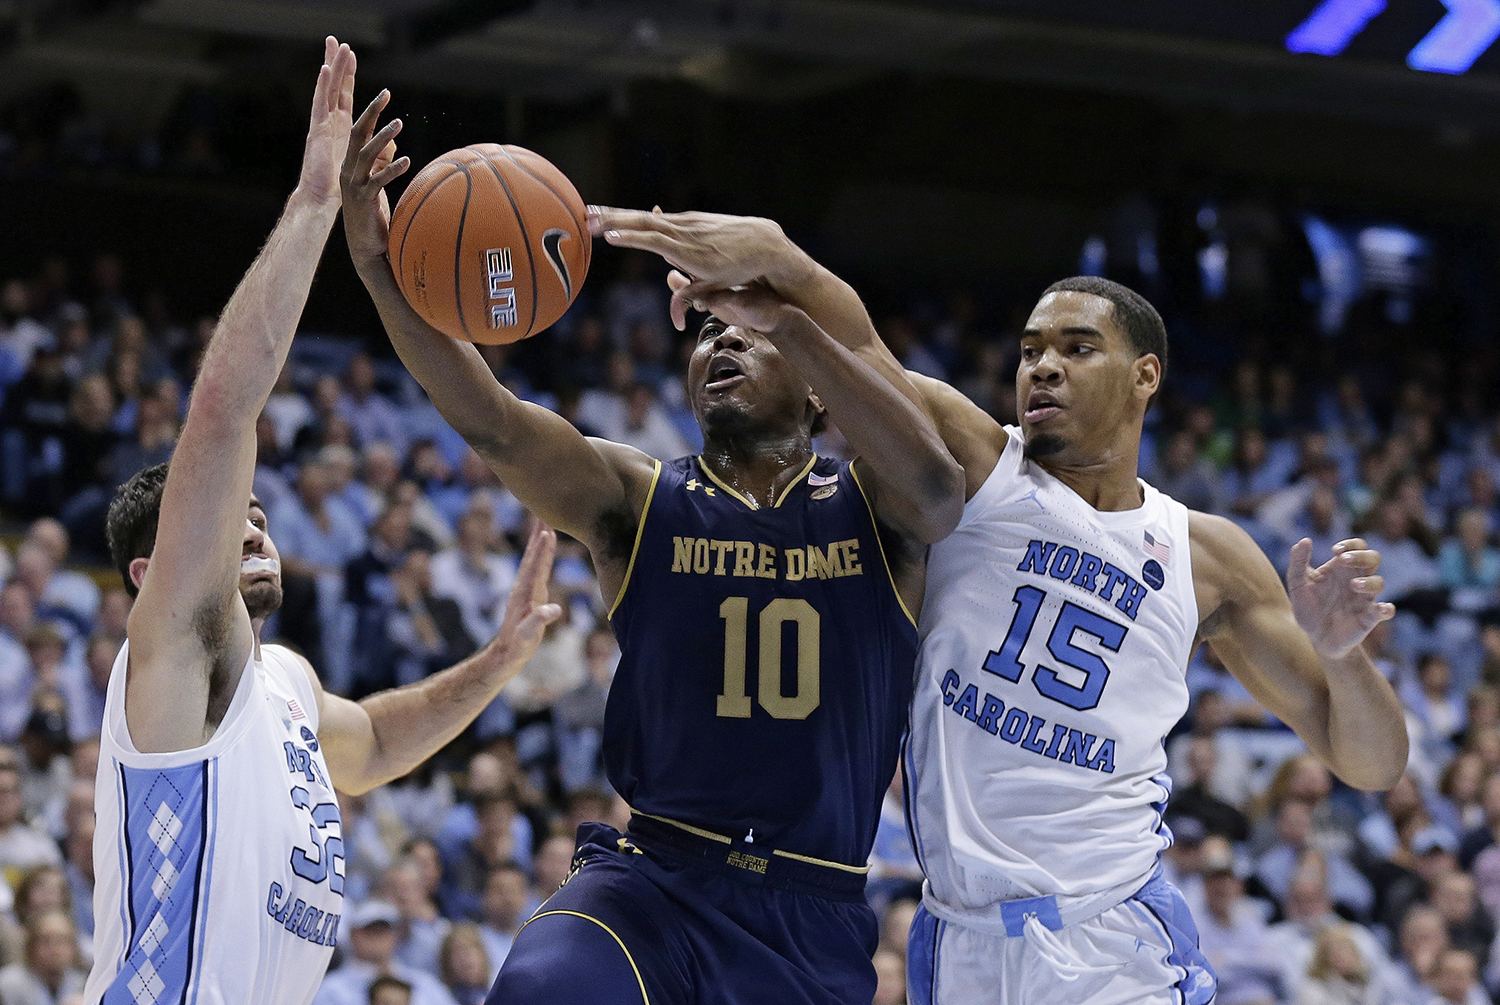 "<div class=""meta image-caption""><div class=""origin-logo origin-image ap""><span>AP</span></div><span class=""caption-text"">North Carolina's Luke Maye, left, and Garrison Brooks (15) guard Notre Dame's TJ Gibbs (10) during the second half. (Gerry Broome)</span></div>"